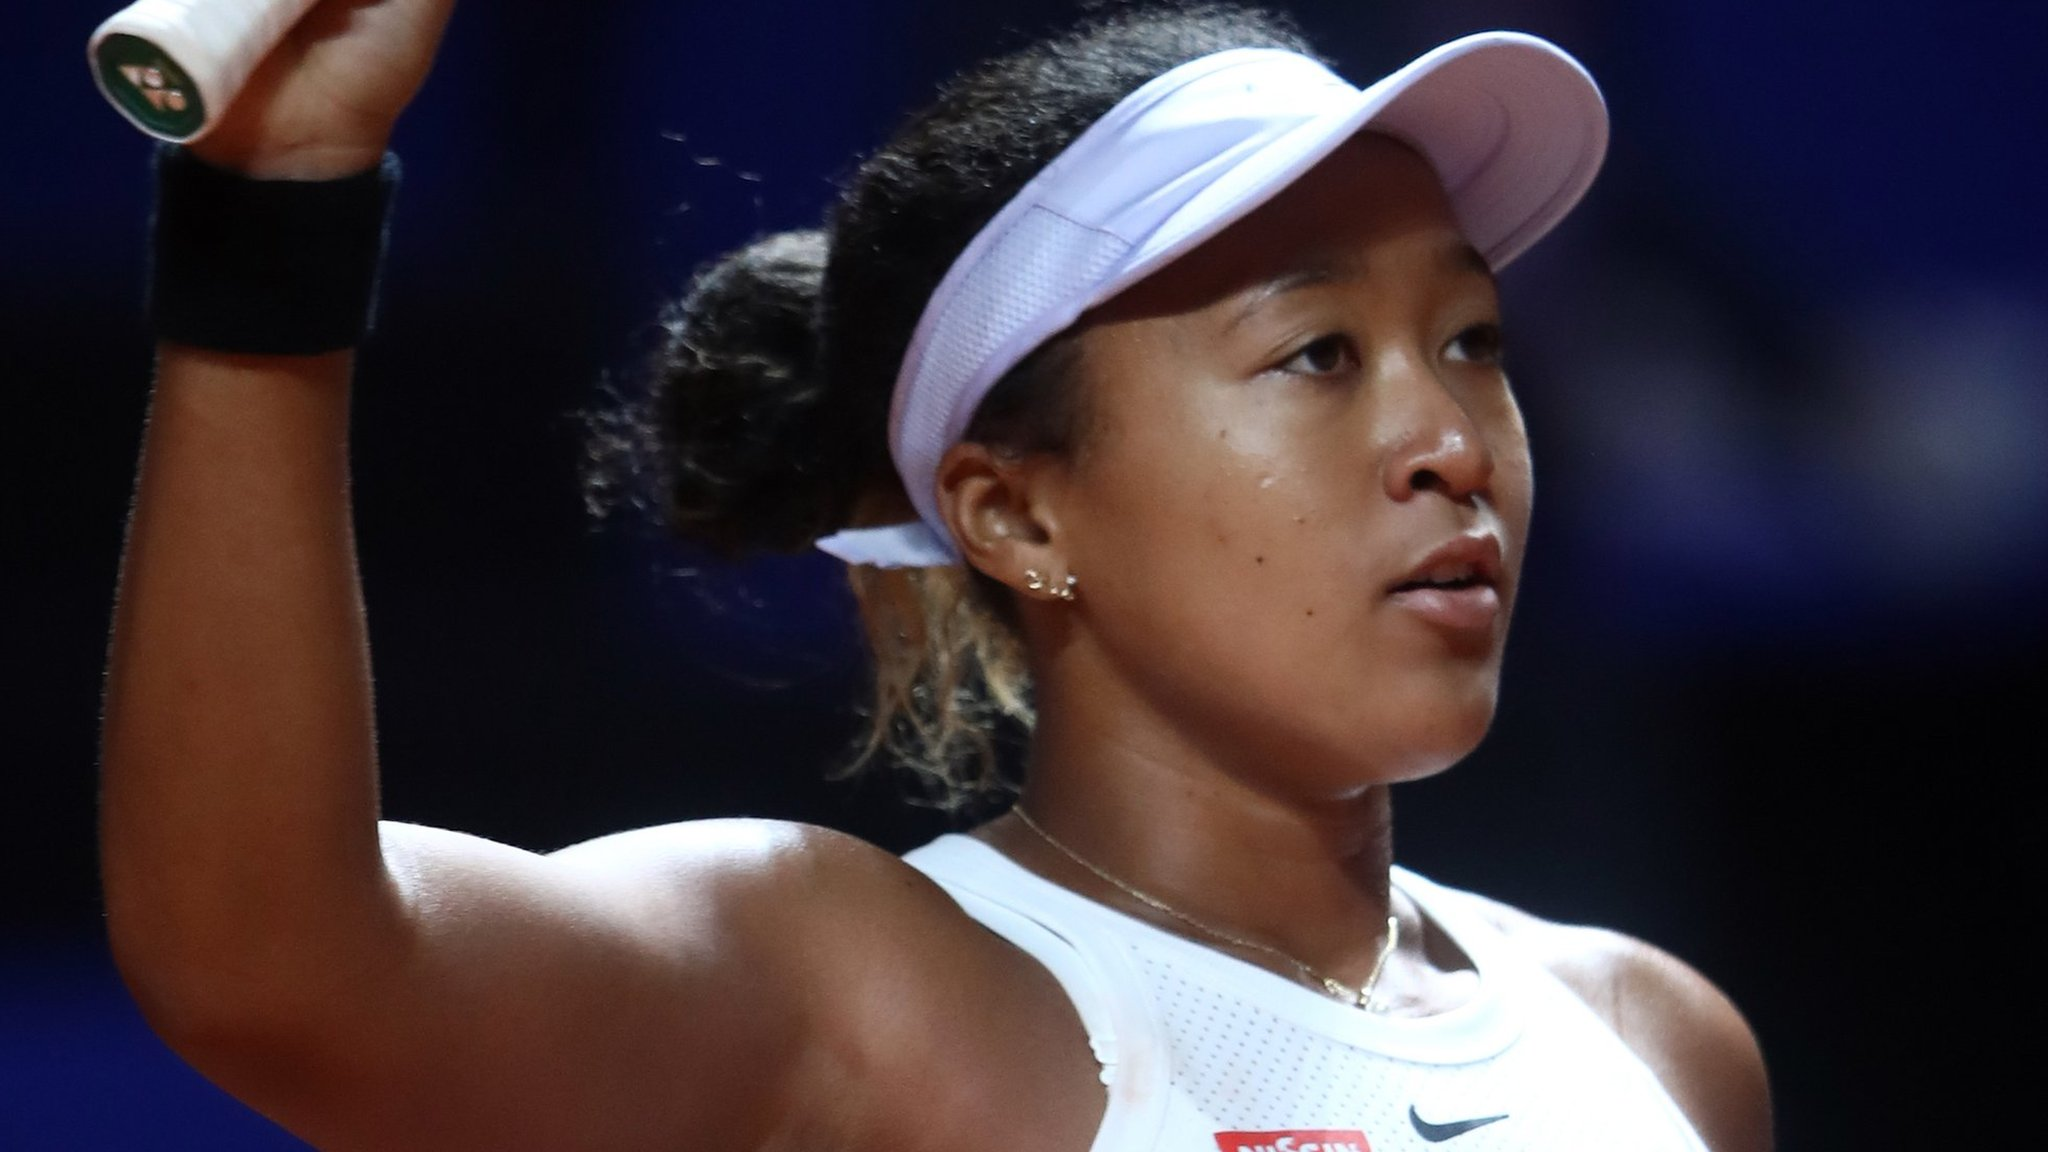 Stuttgart Open: Naomi Osaka beats Hsieh Su-wei to reach quarter-finals